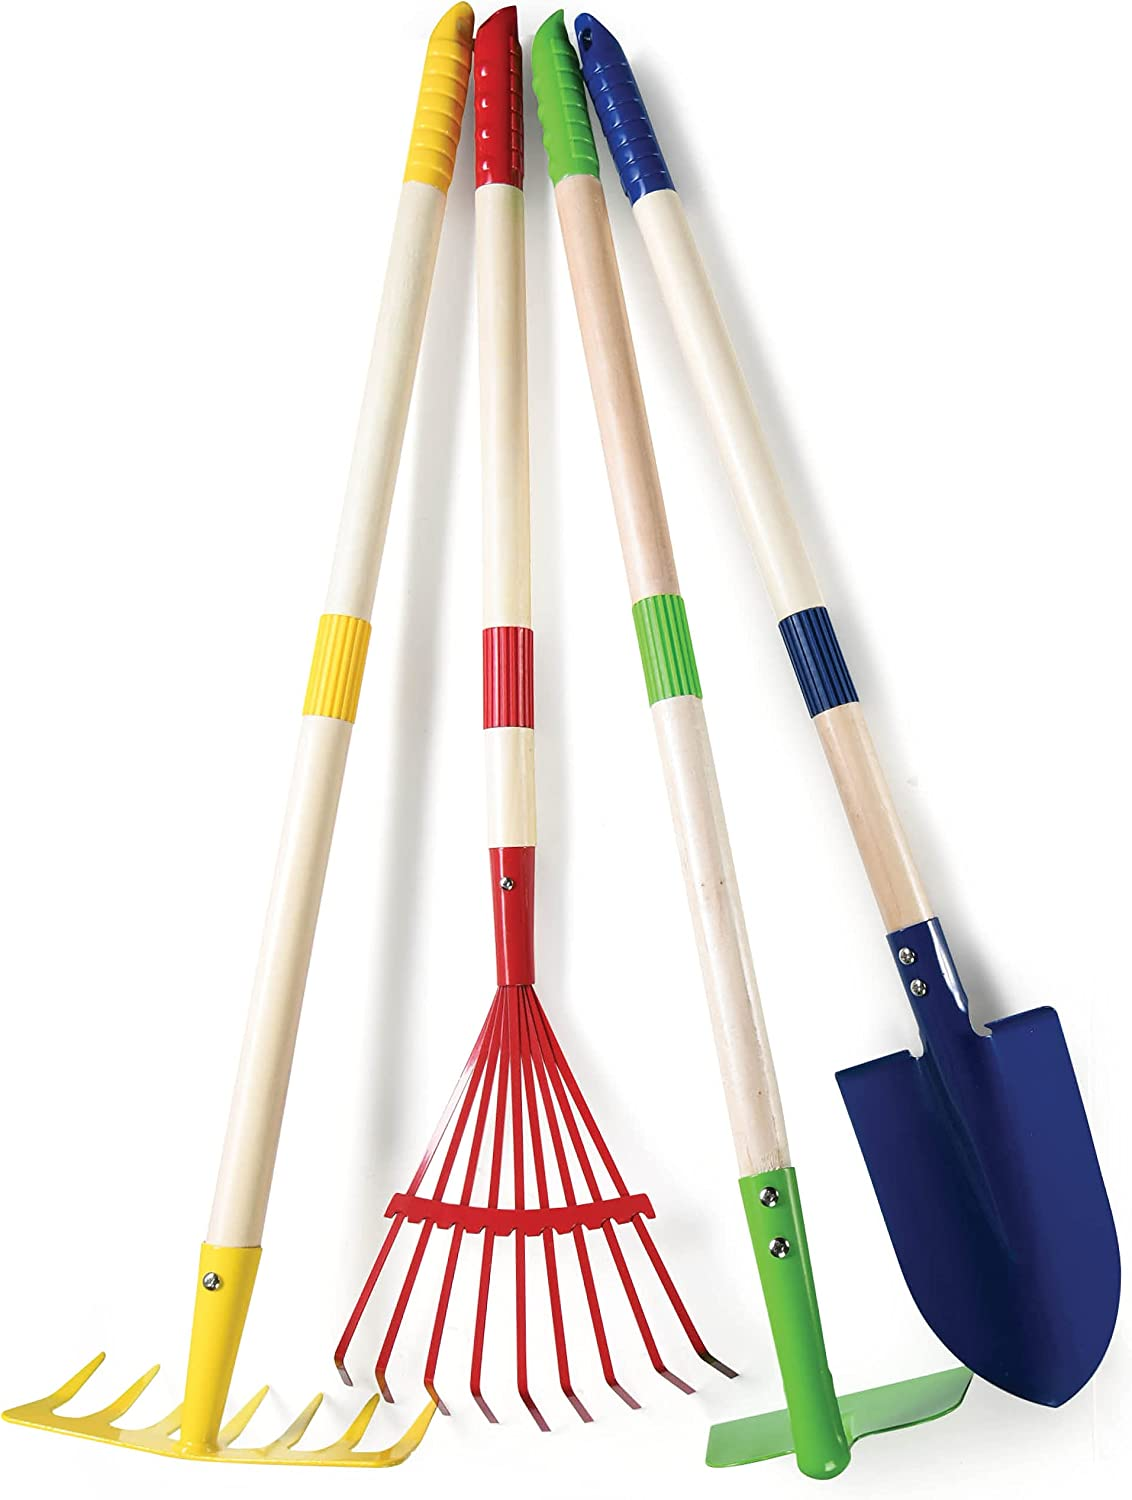 Play22 Kids Garden Tool Set Toy 4-Piece - Shovel, Rake, Hoe, Leaf Rake, Wooden Gardening Tools for Kids Best Outdoor Toys Gift for Boys and Girls : Toys & Games